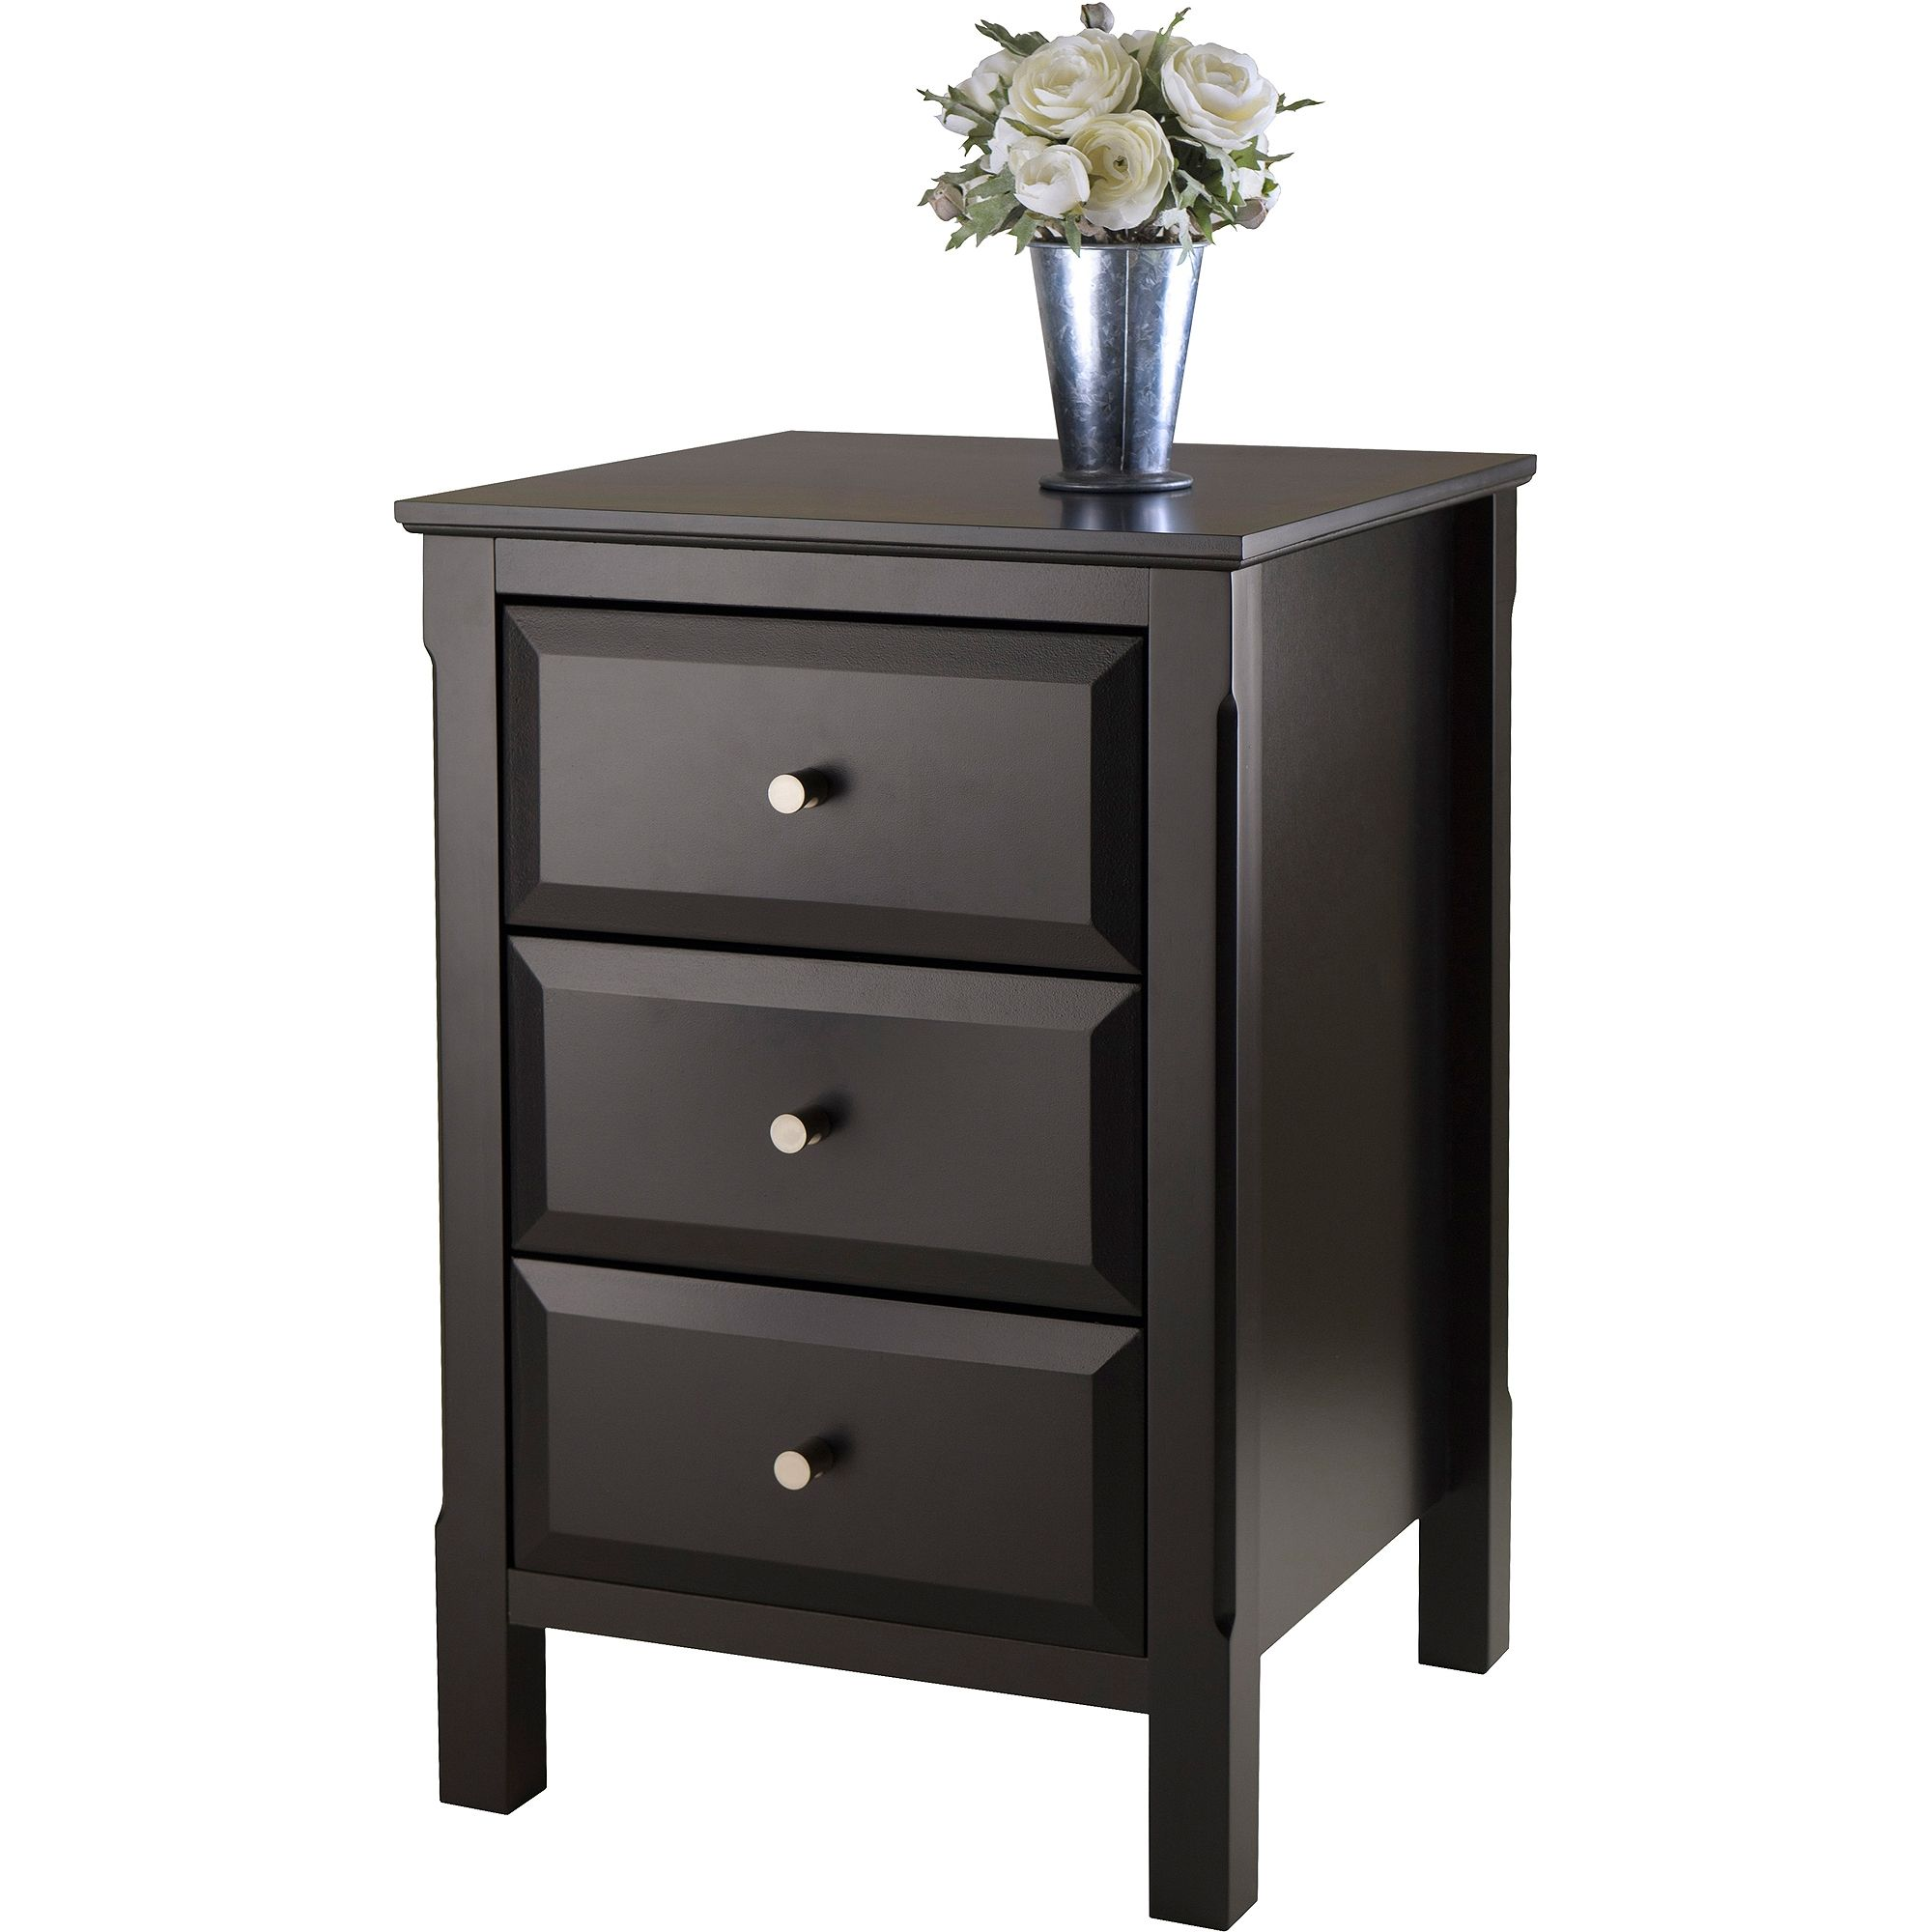 black night side tables cielobautista winsome wood beechwood end accent table espresso timmy nightstand with drawers finish pottery barn coffee drum set stool patio furniture